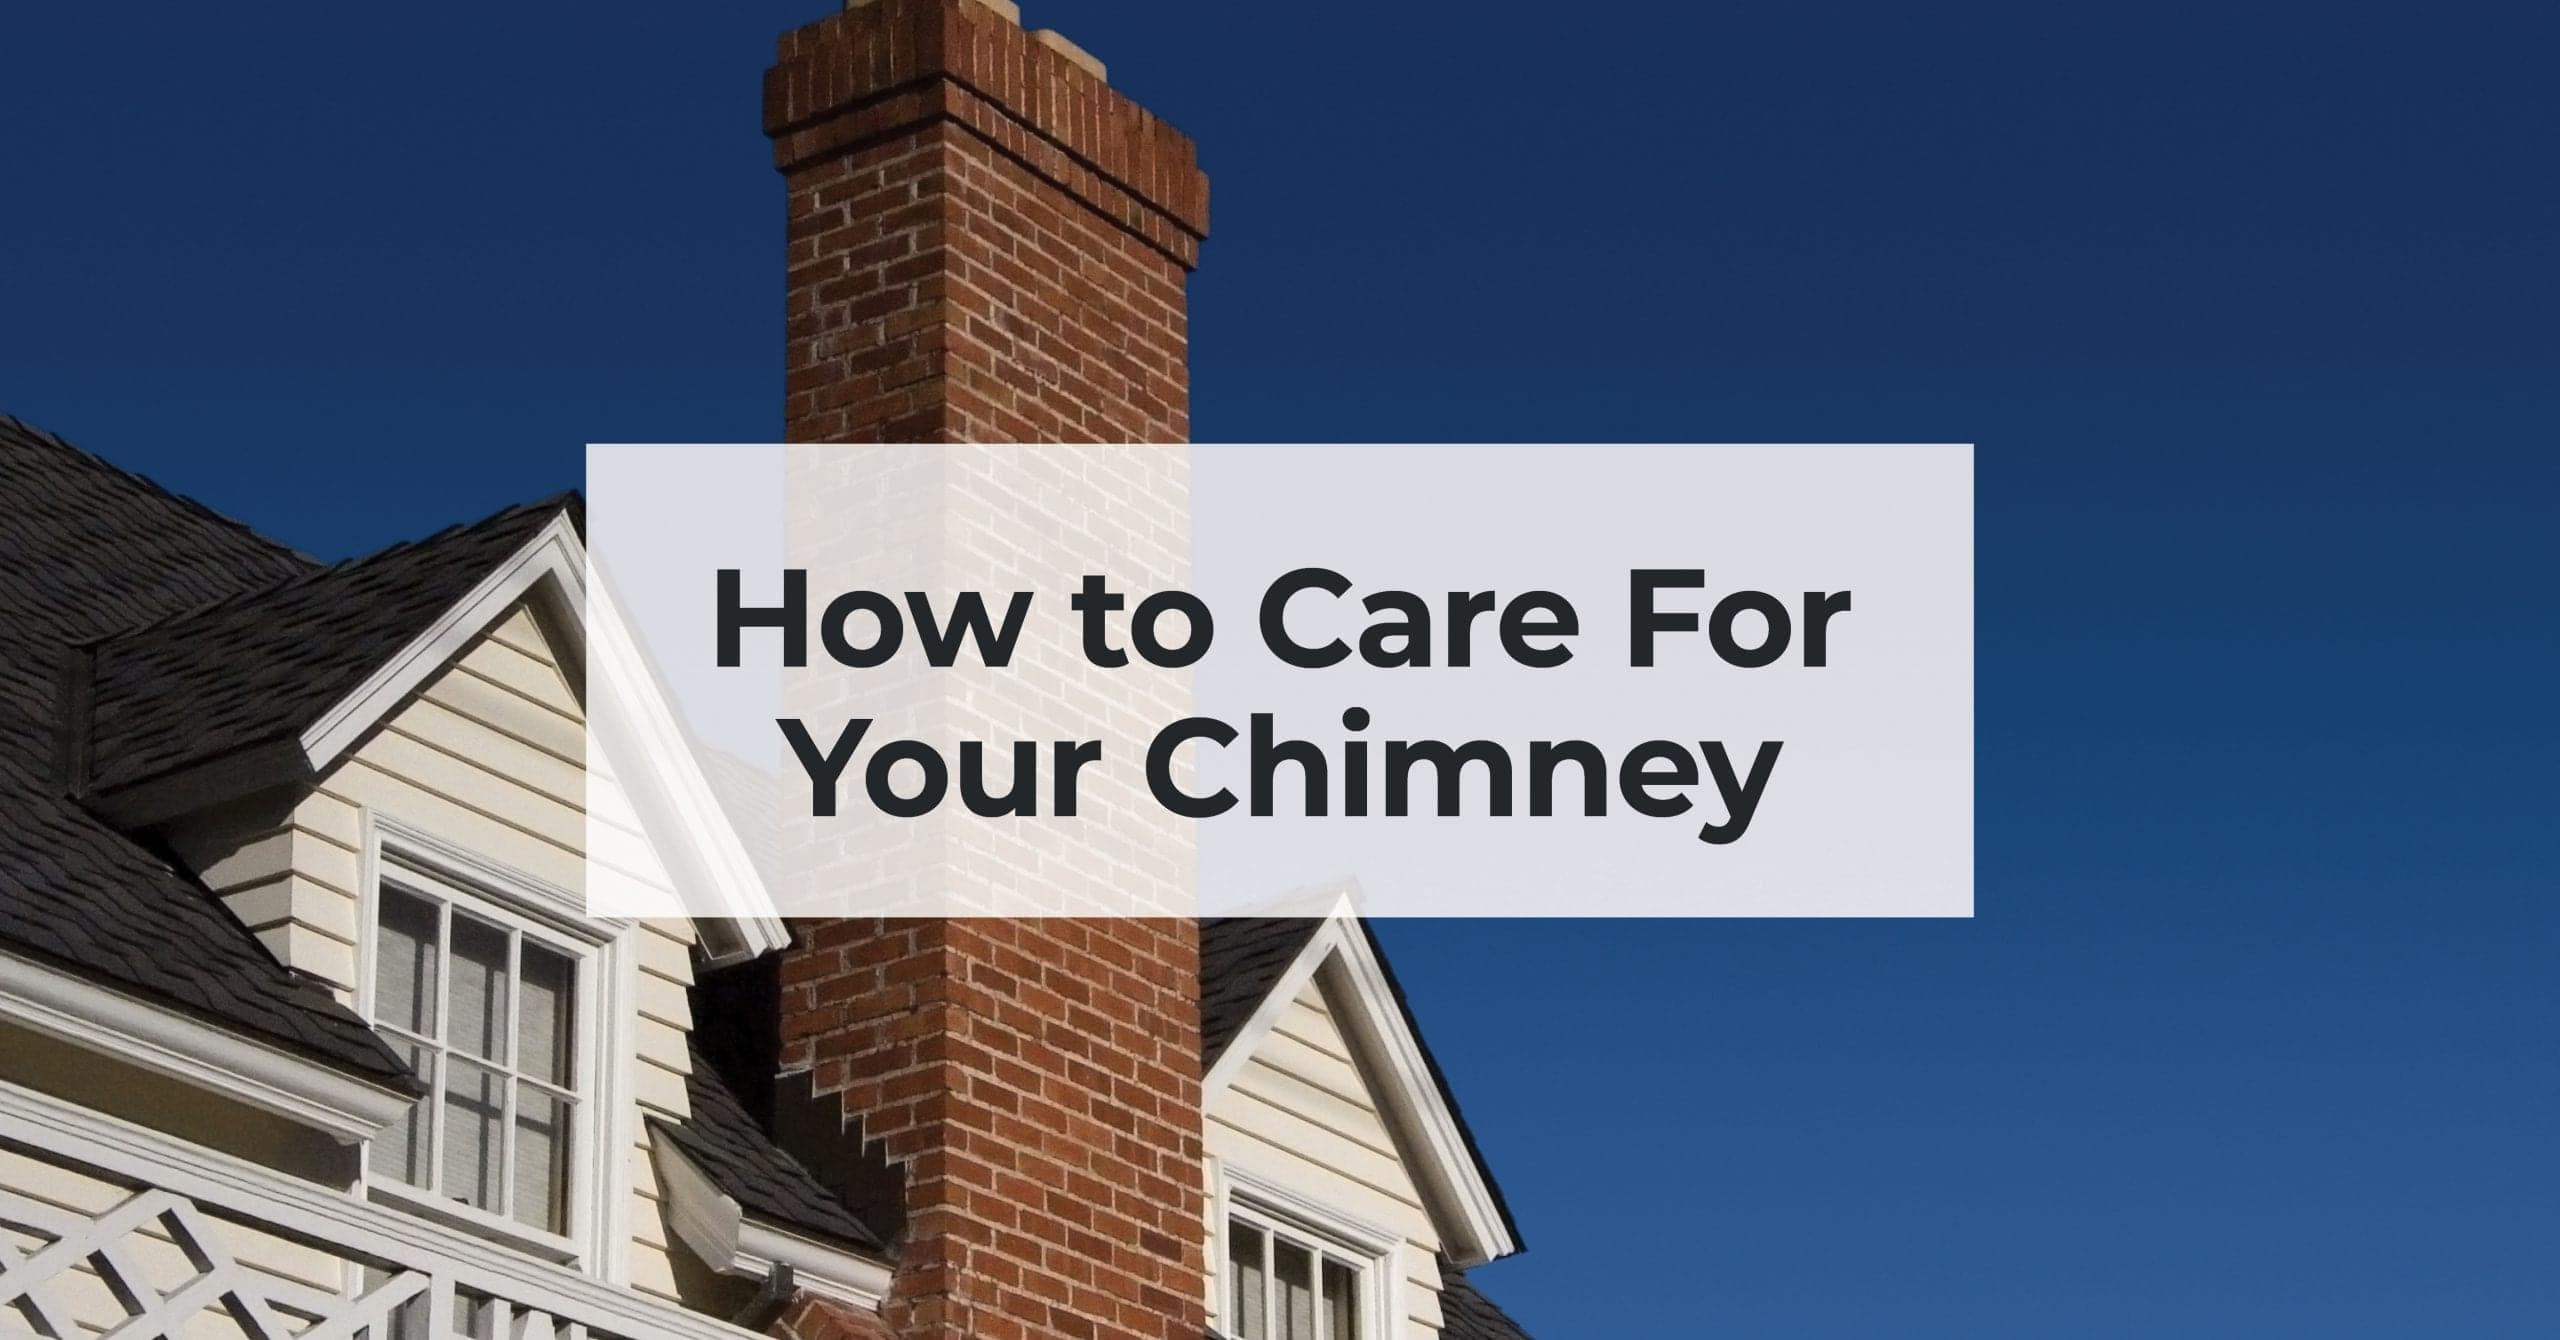 How to Care For Your Chimney